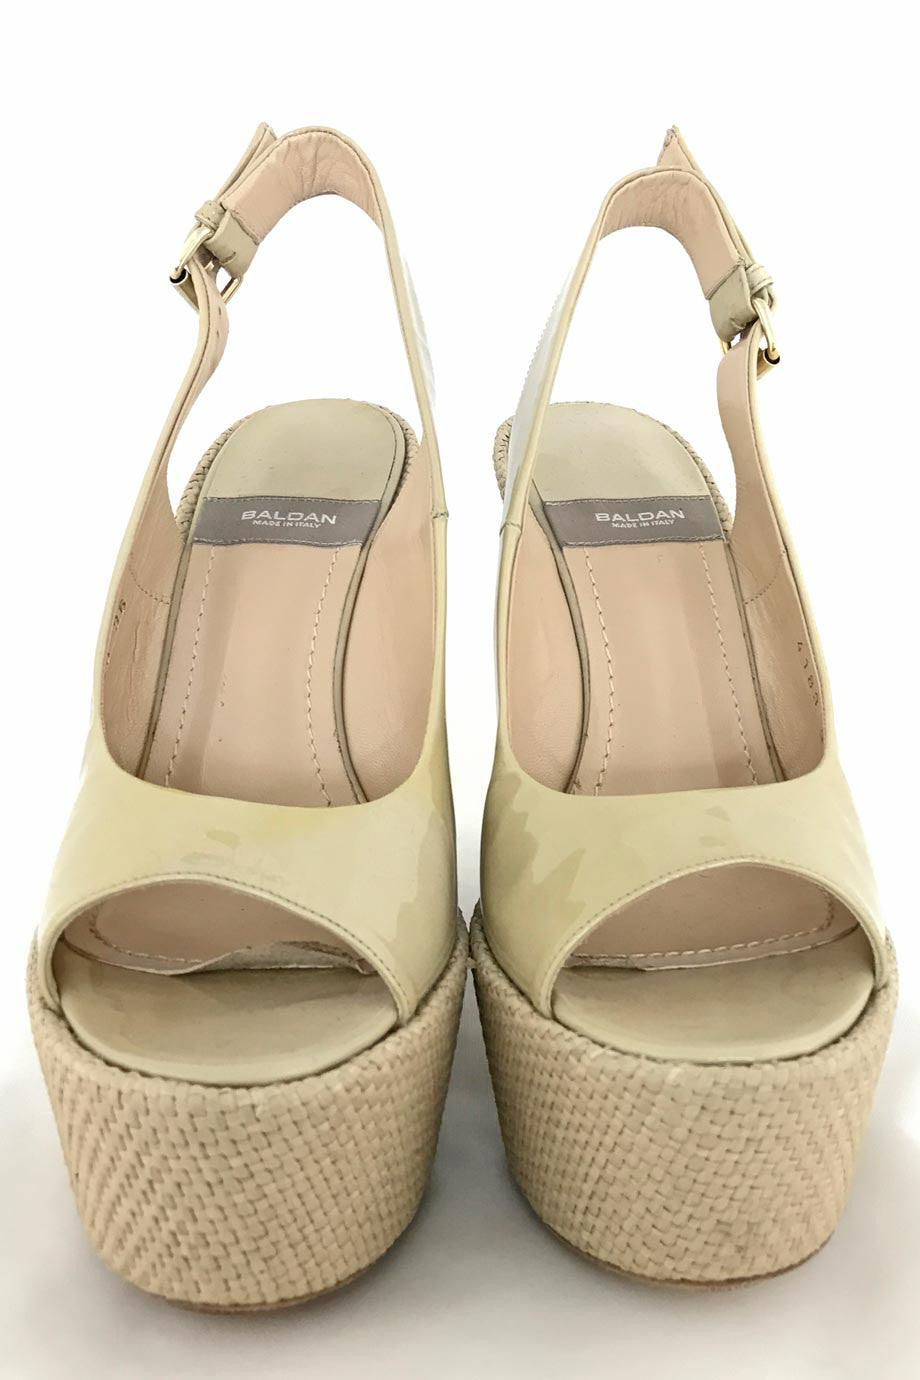 Baldan Beige Patent Leather Open-Toe Platform Wedges / Sz 36-Style Therapy